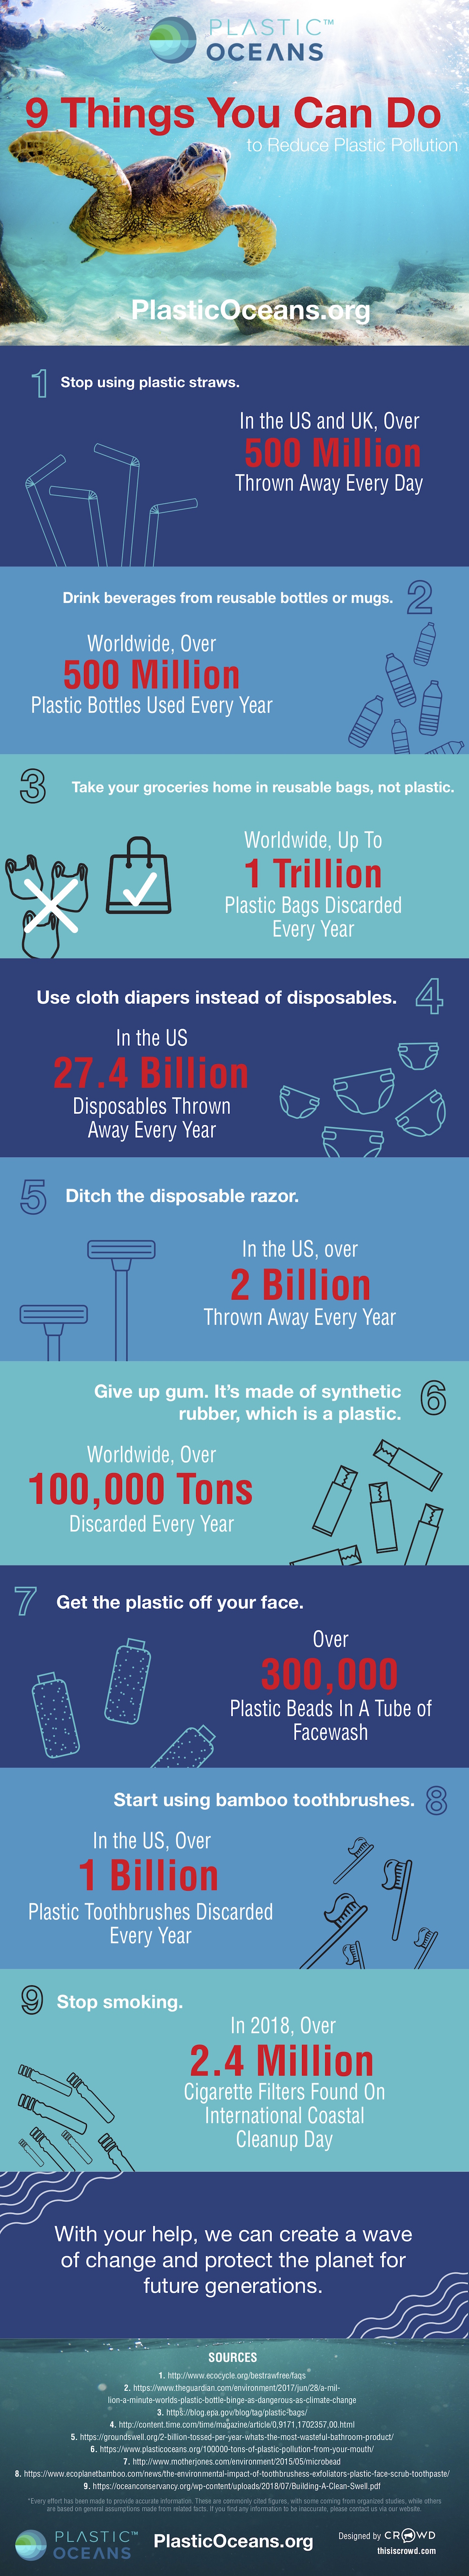 9 Things You Can Do to Reduce Plastic Pollution